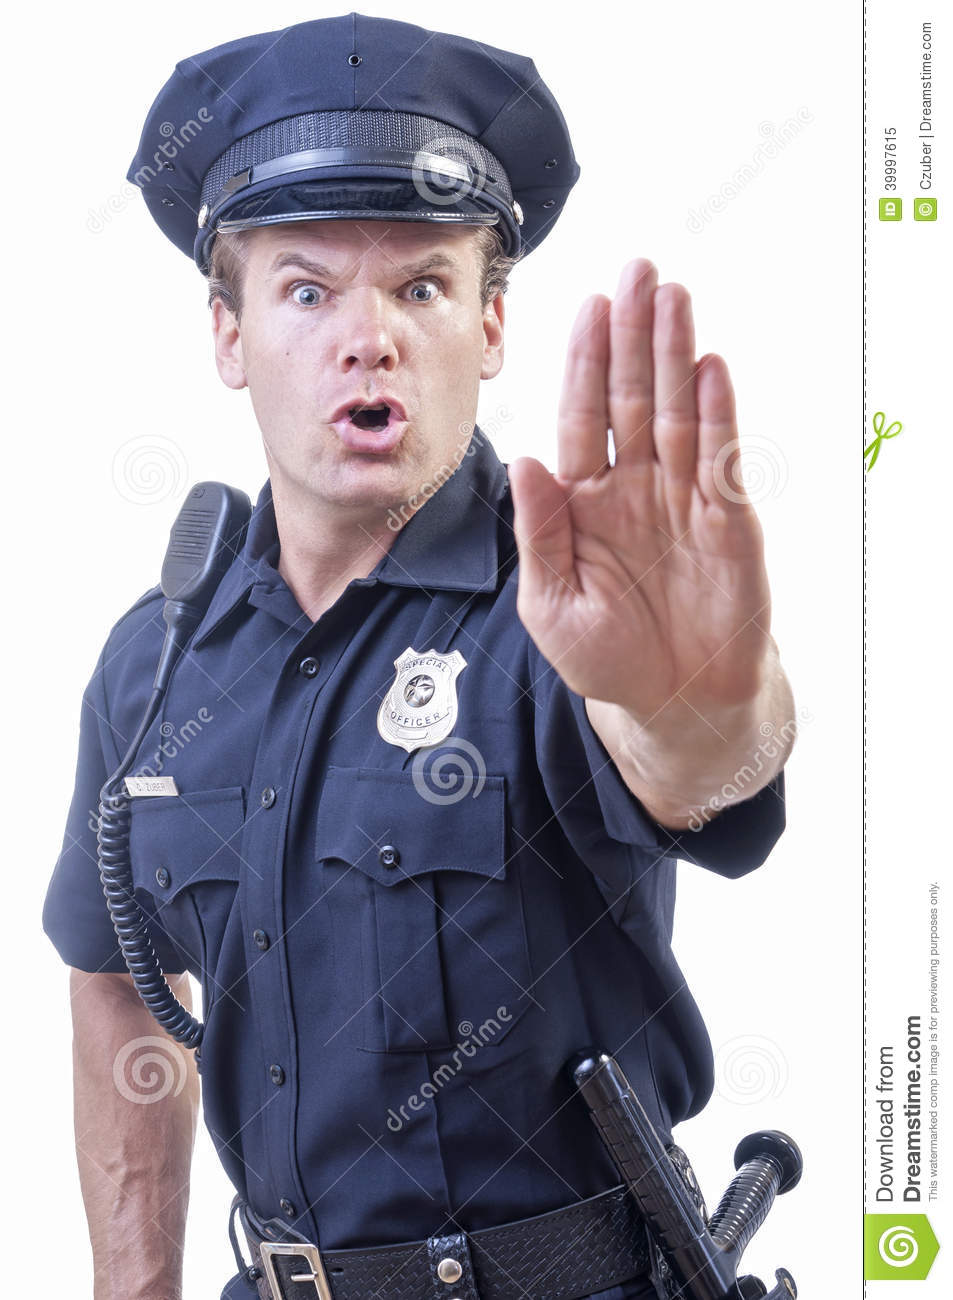 Stop Right There Stock Photo - Image: 39997615